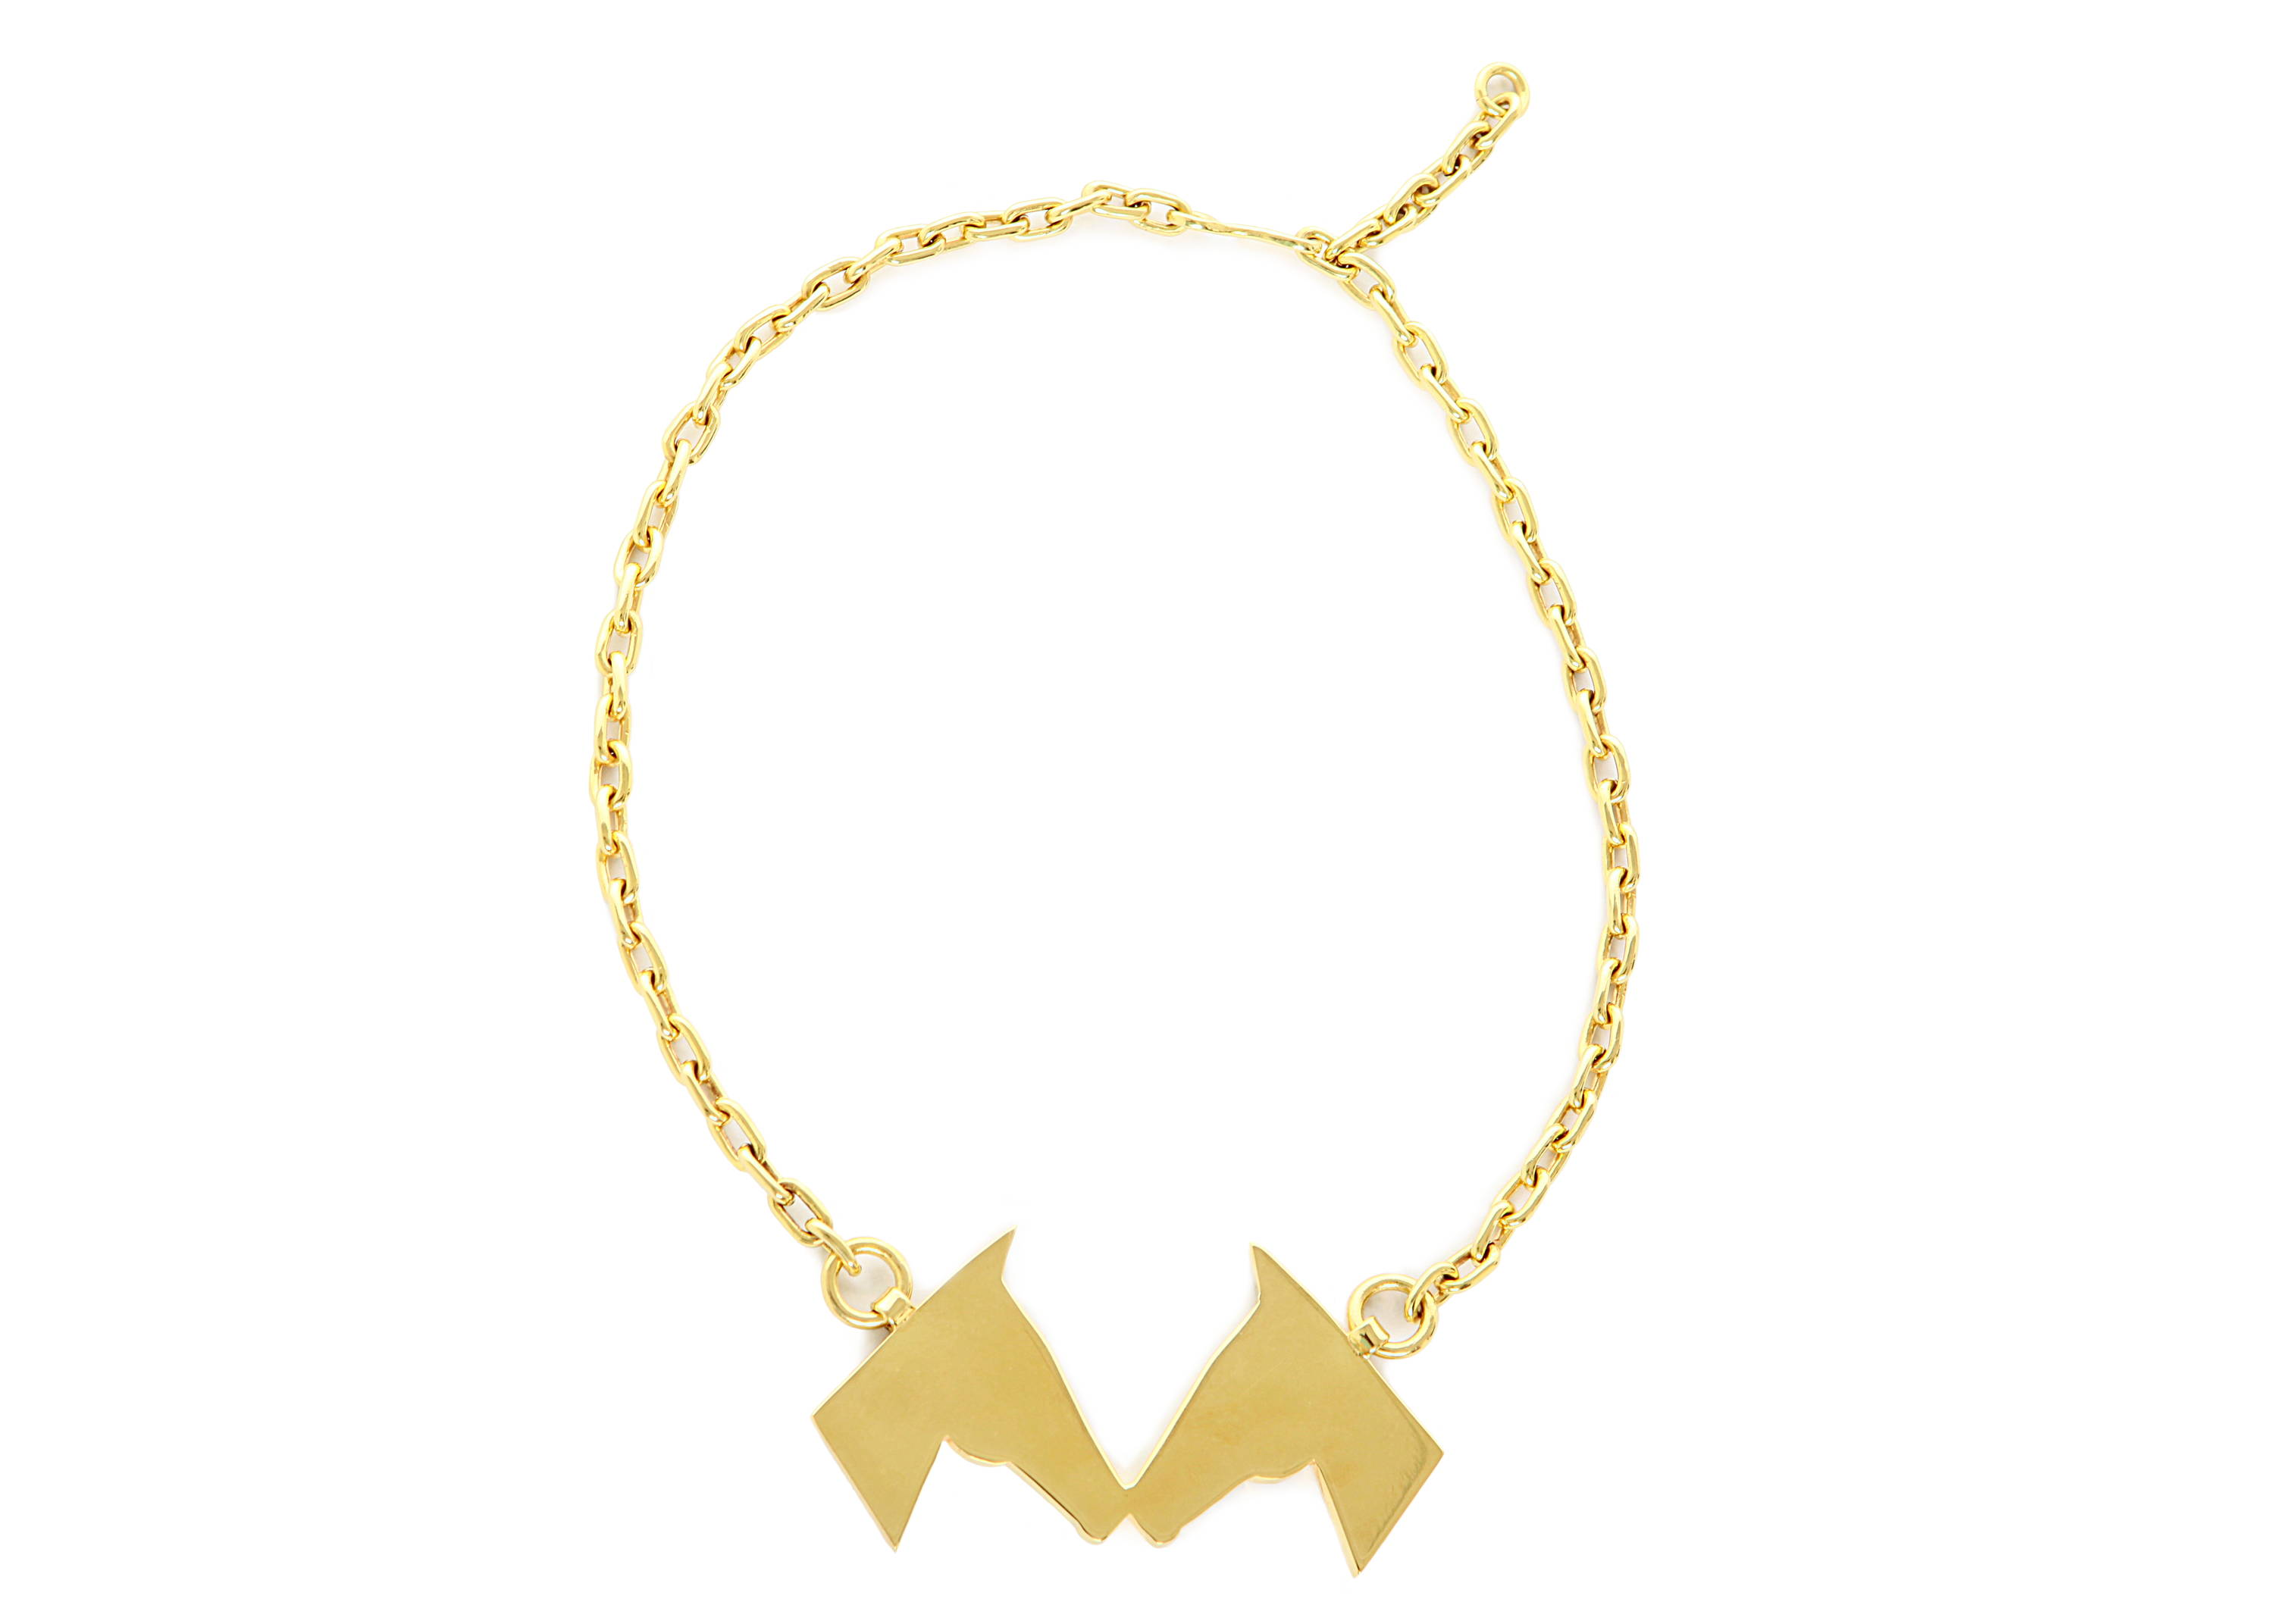 equestrian-inspired Gold Caballos Besando Necklace in Gold - Stick & Ball